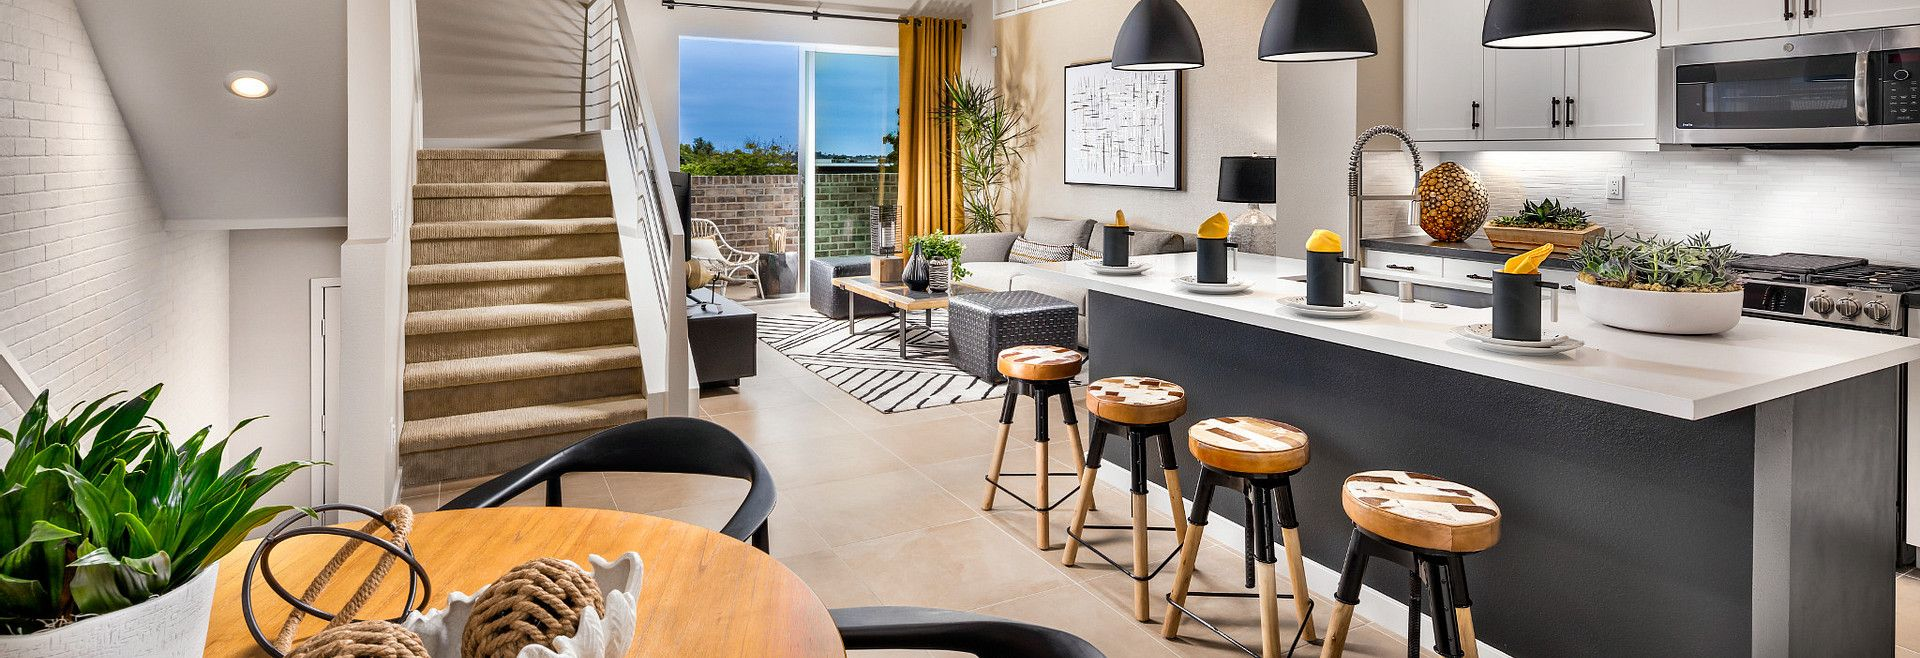 'Kensington at The Square' by Shea Homes - Family - San Diego in San Diego